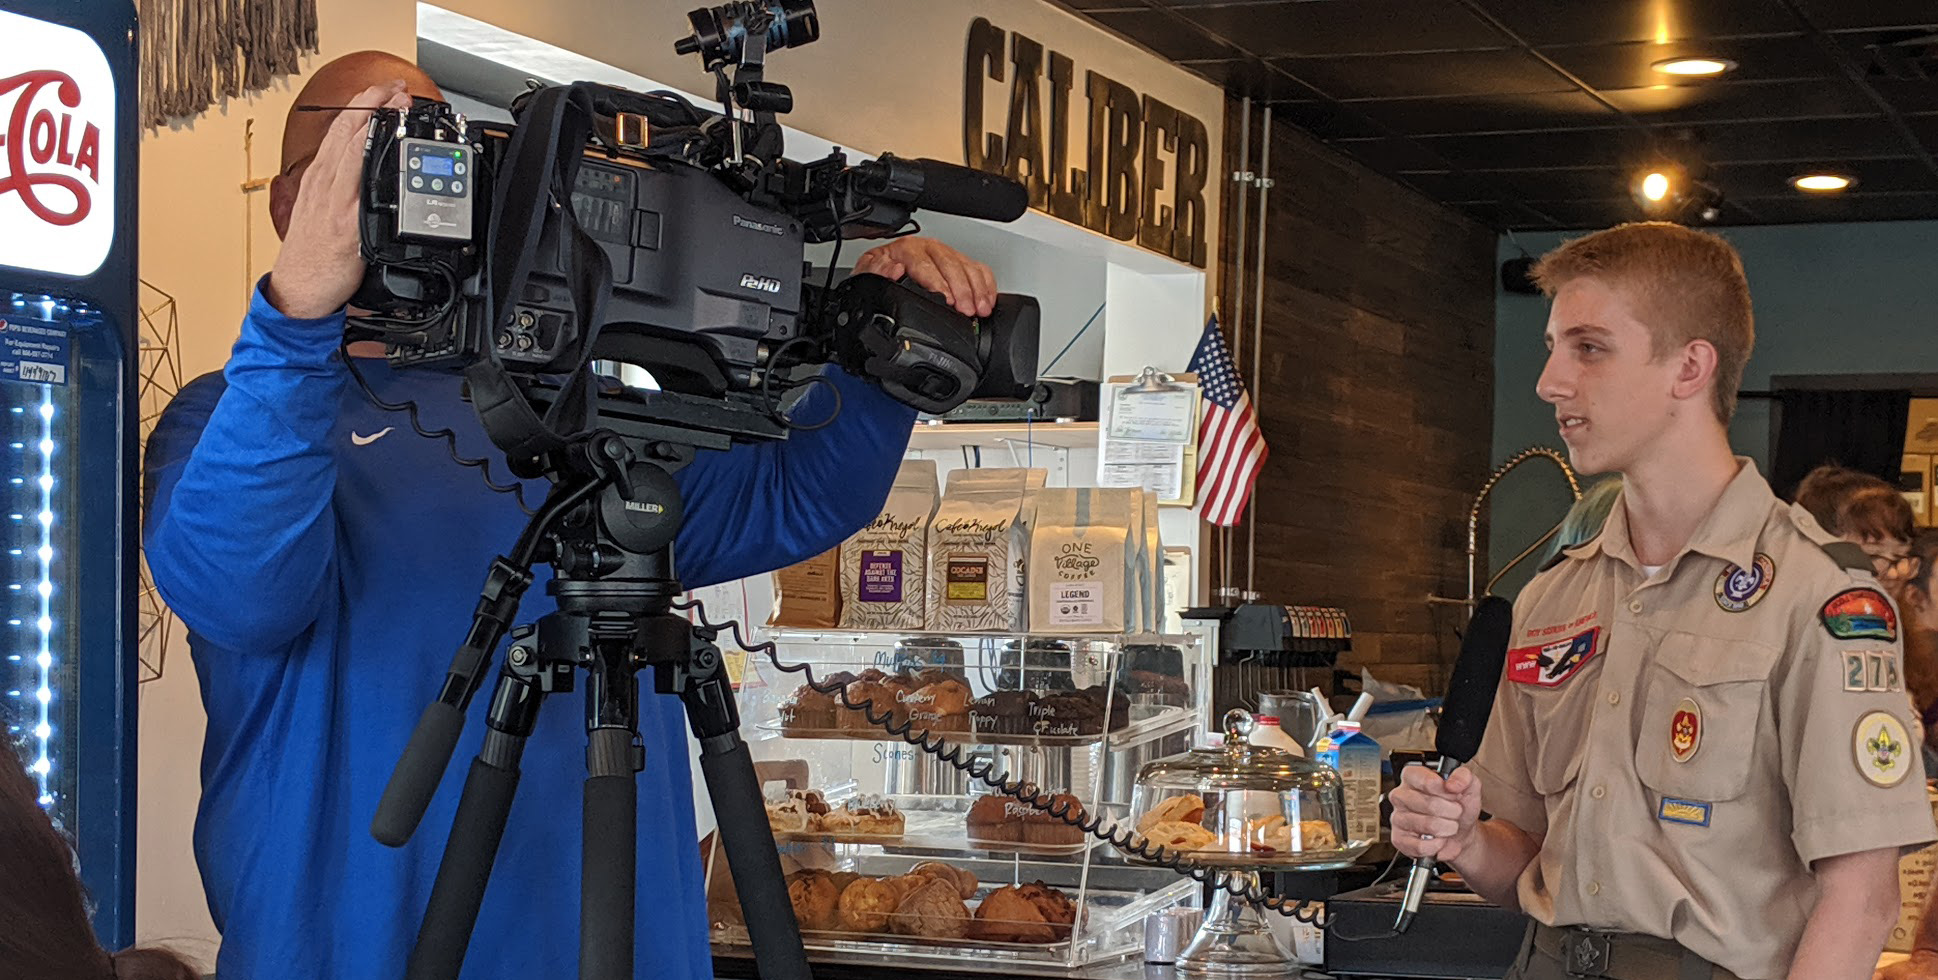 Austin is interviewed at Caliber Coffee in September 2019.